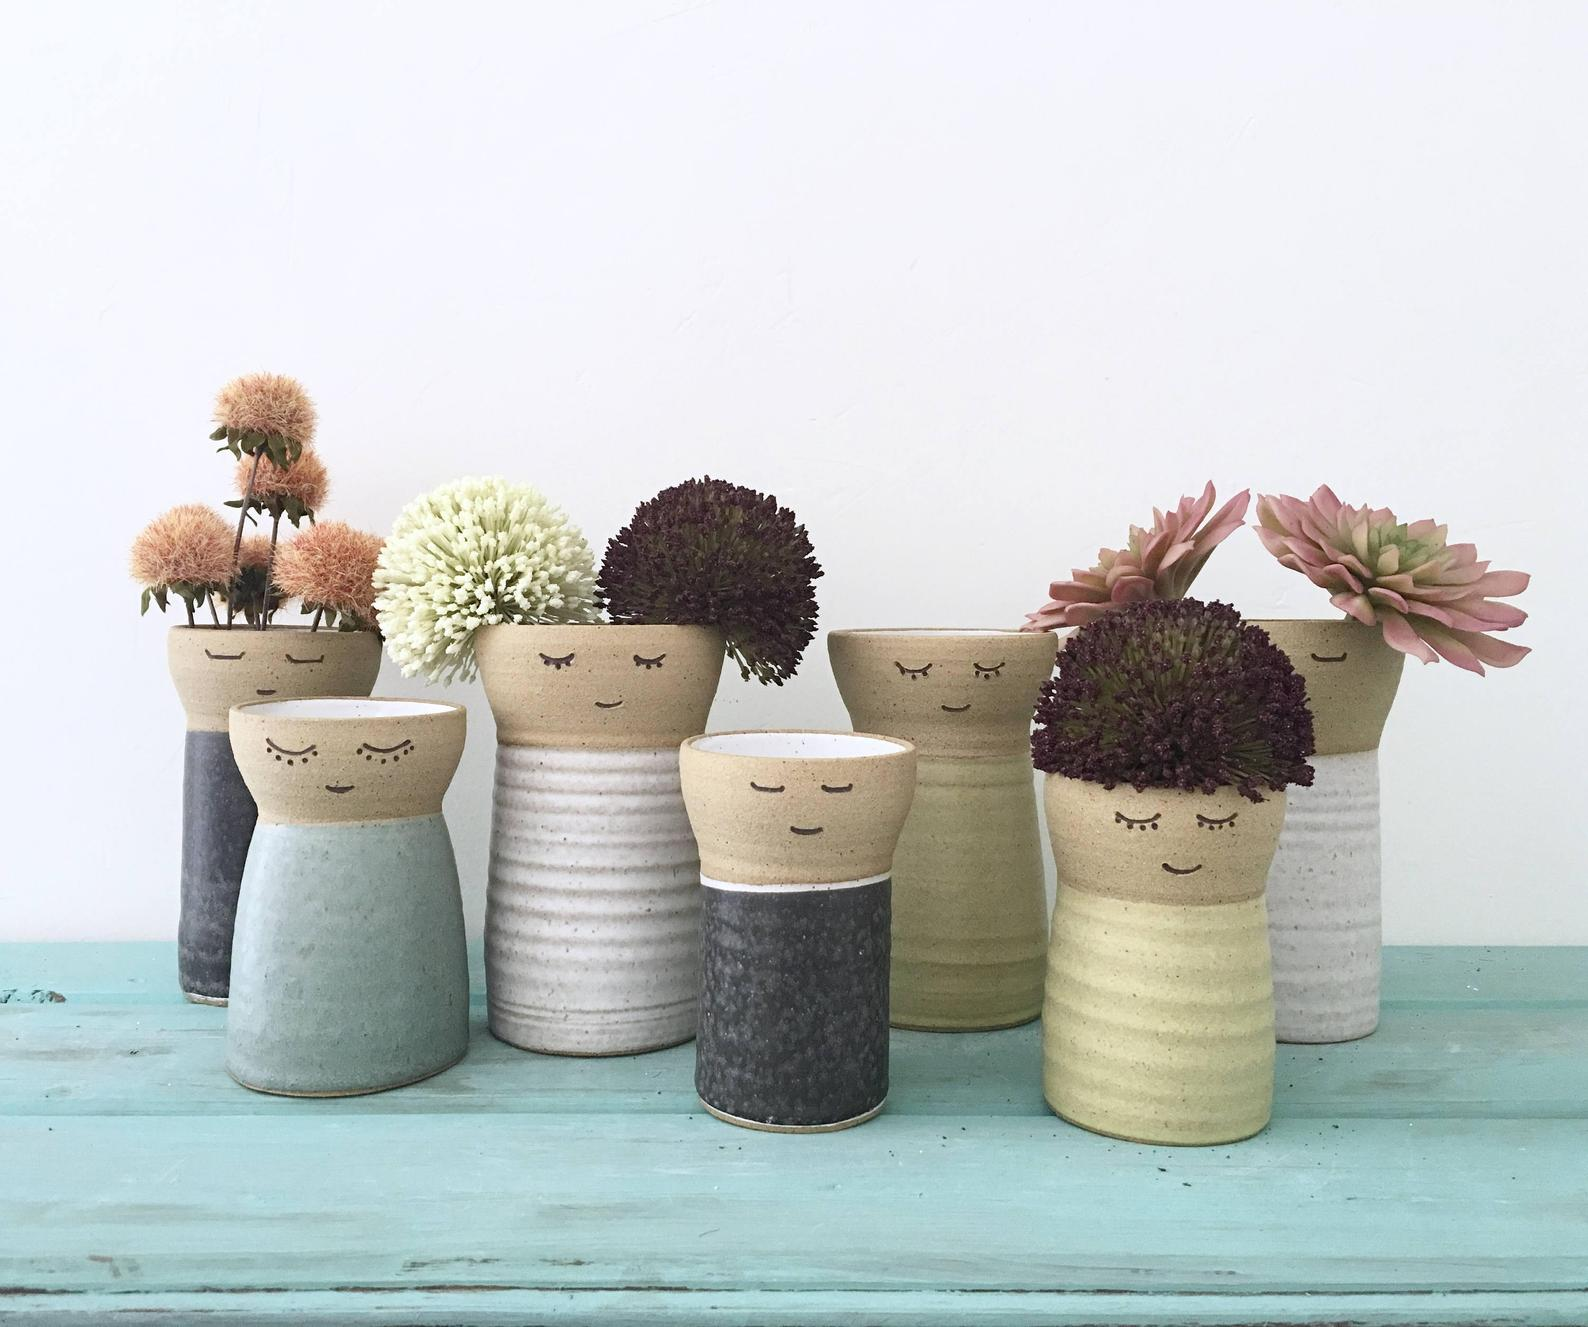 face flower vases of multiple sizes